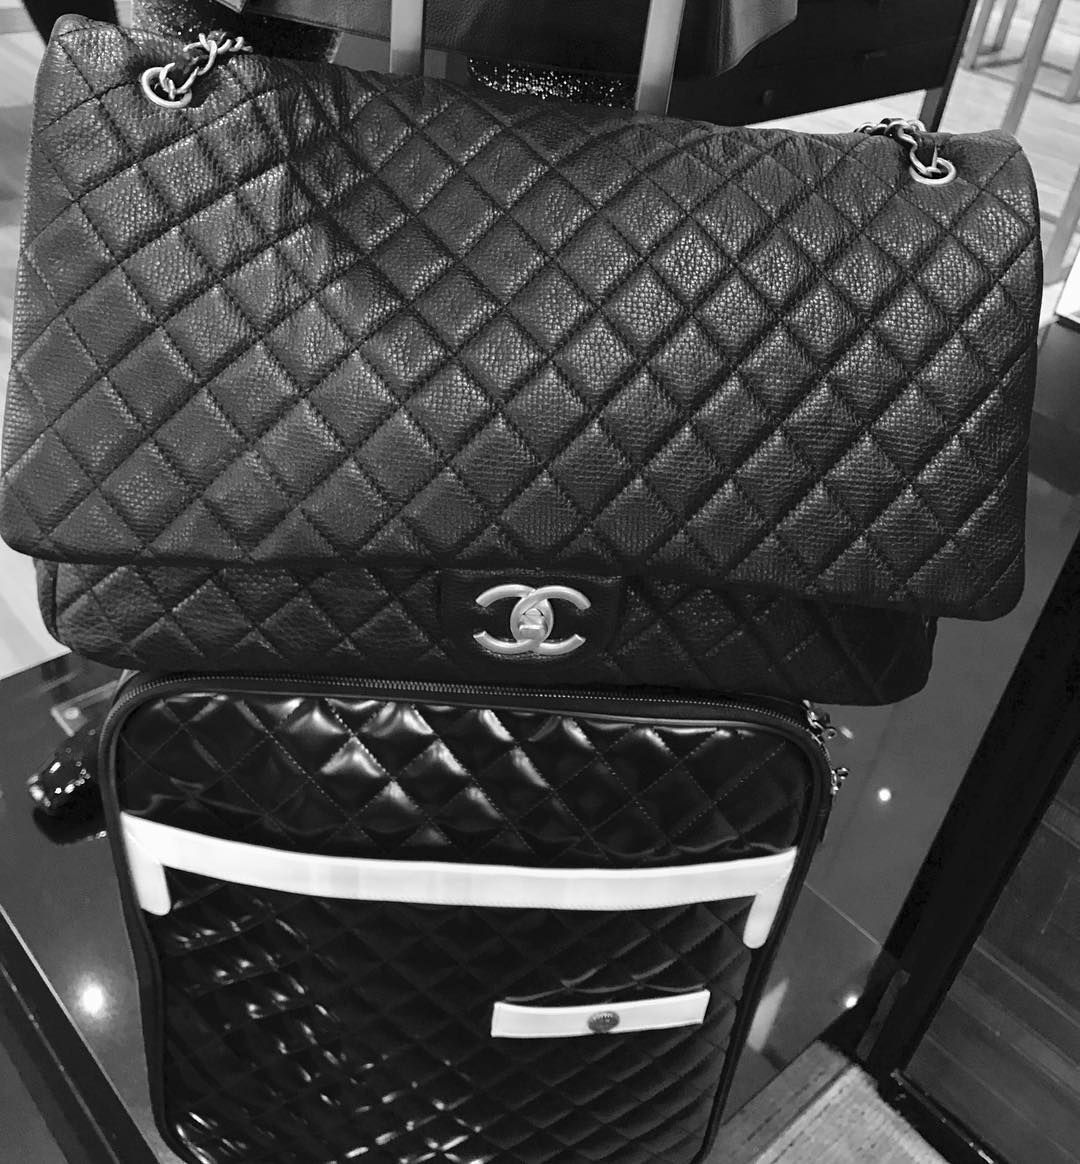 092c742c0de0dd Chanel XXL Flap Bag. 2017 Latest Cheap Chanel!! More than 77% Off Cheap!!